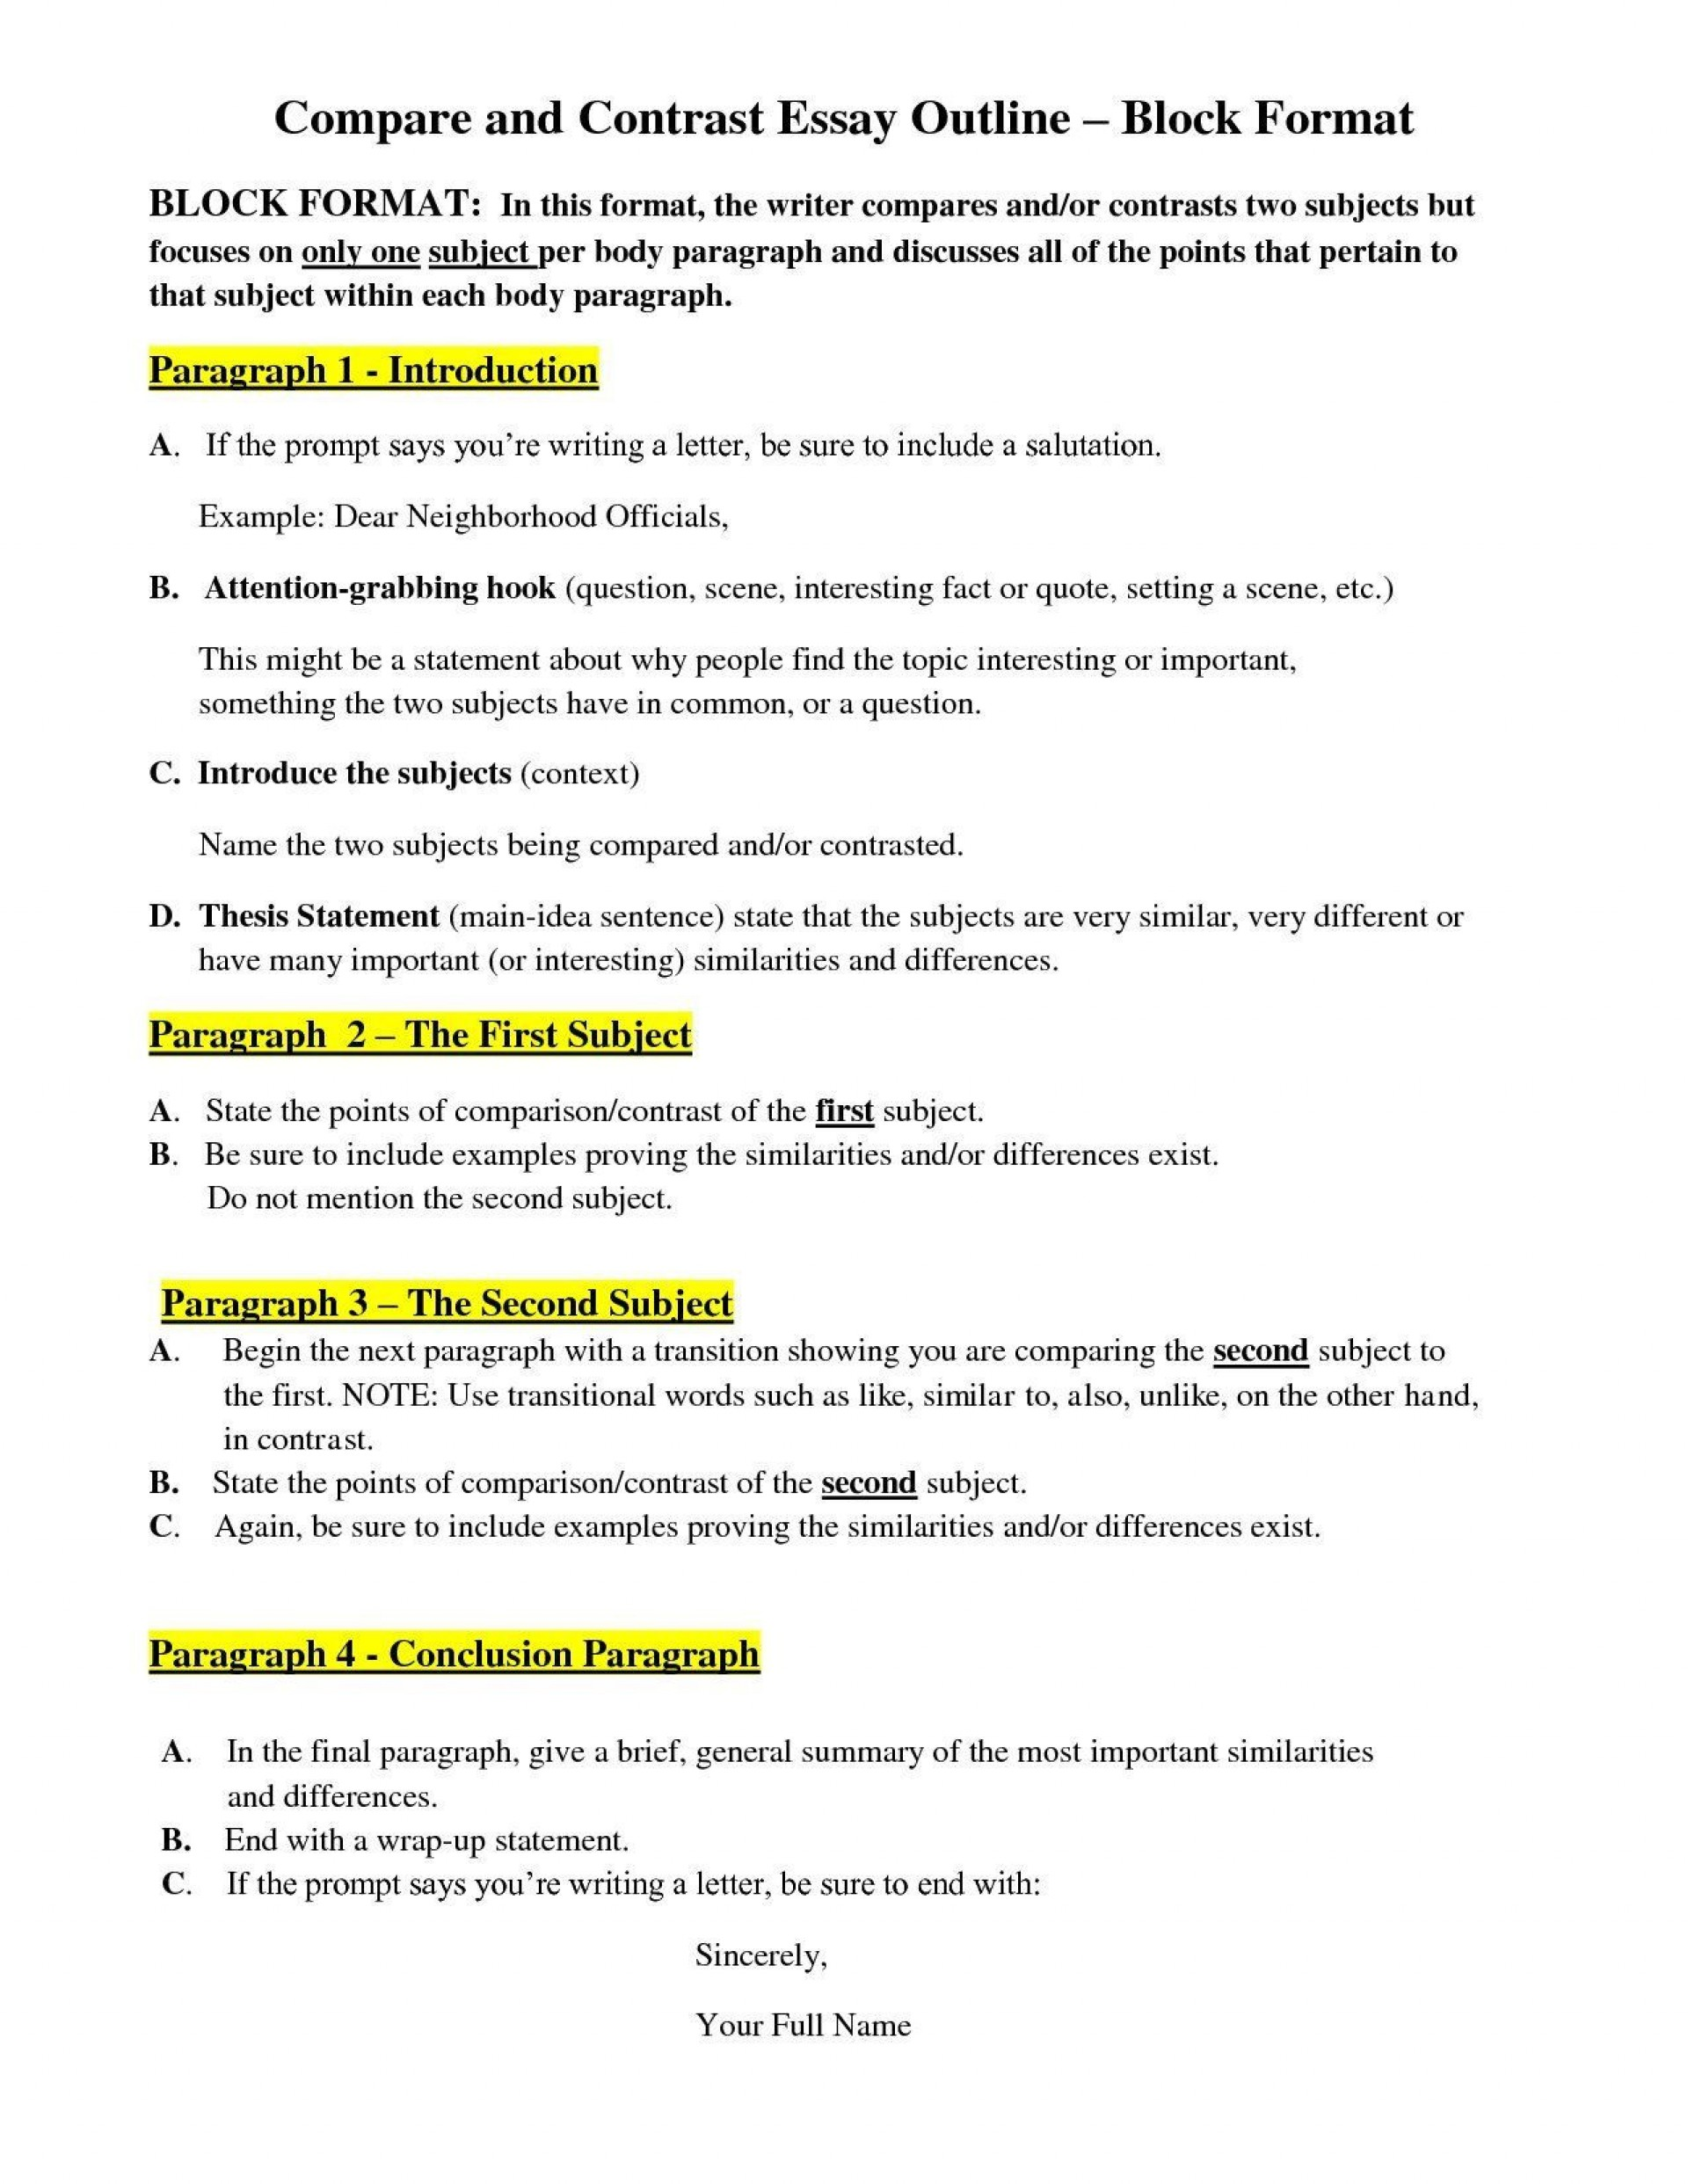 006 Texting While Driving Essay Tok Presentation Template New Outline Persuasive Com And Wonderful Pdf 1920